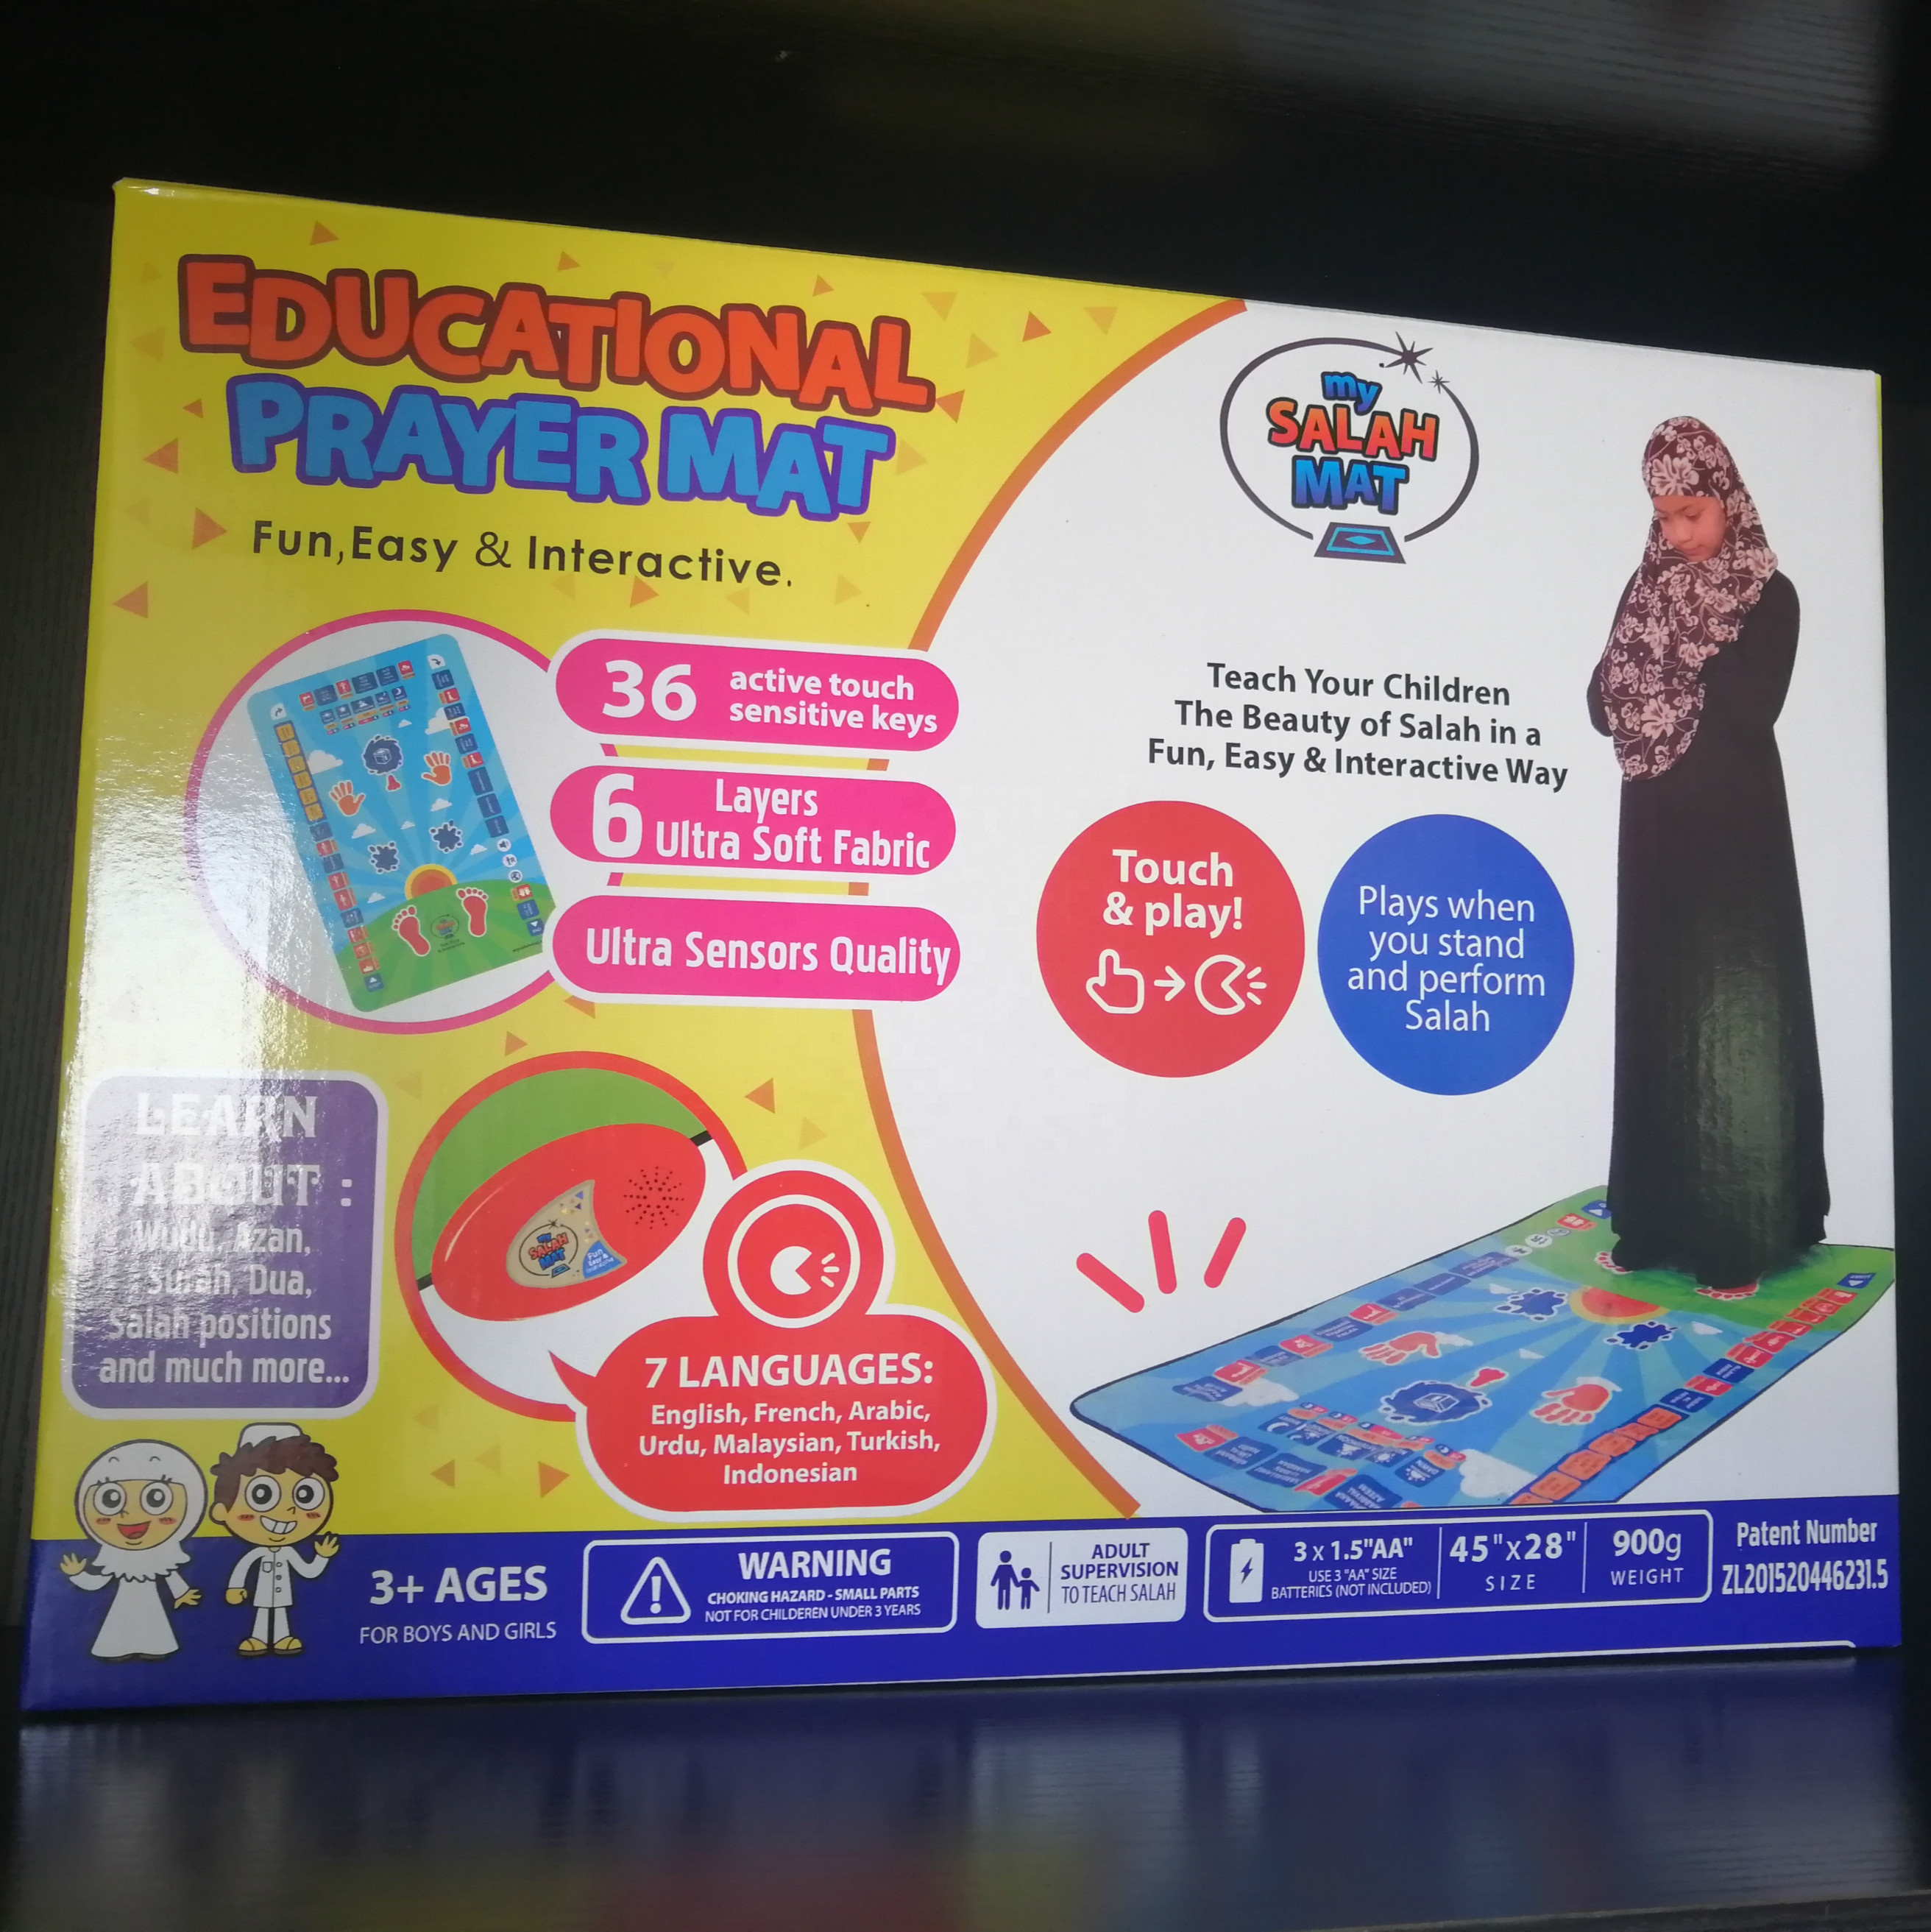 Prayer Use and 70x110 Size islam pray mat children prayer rug